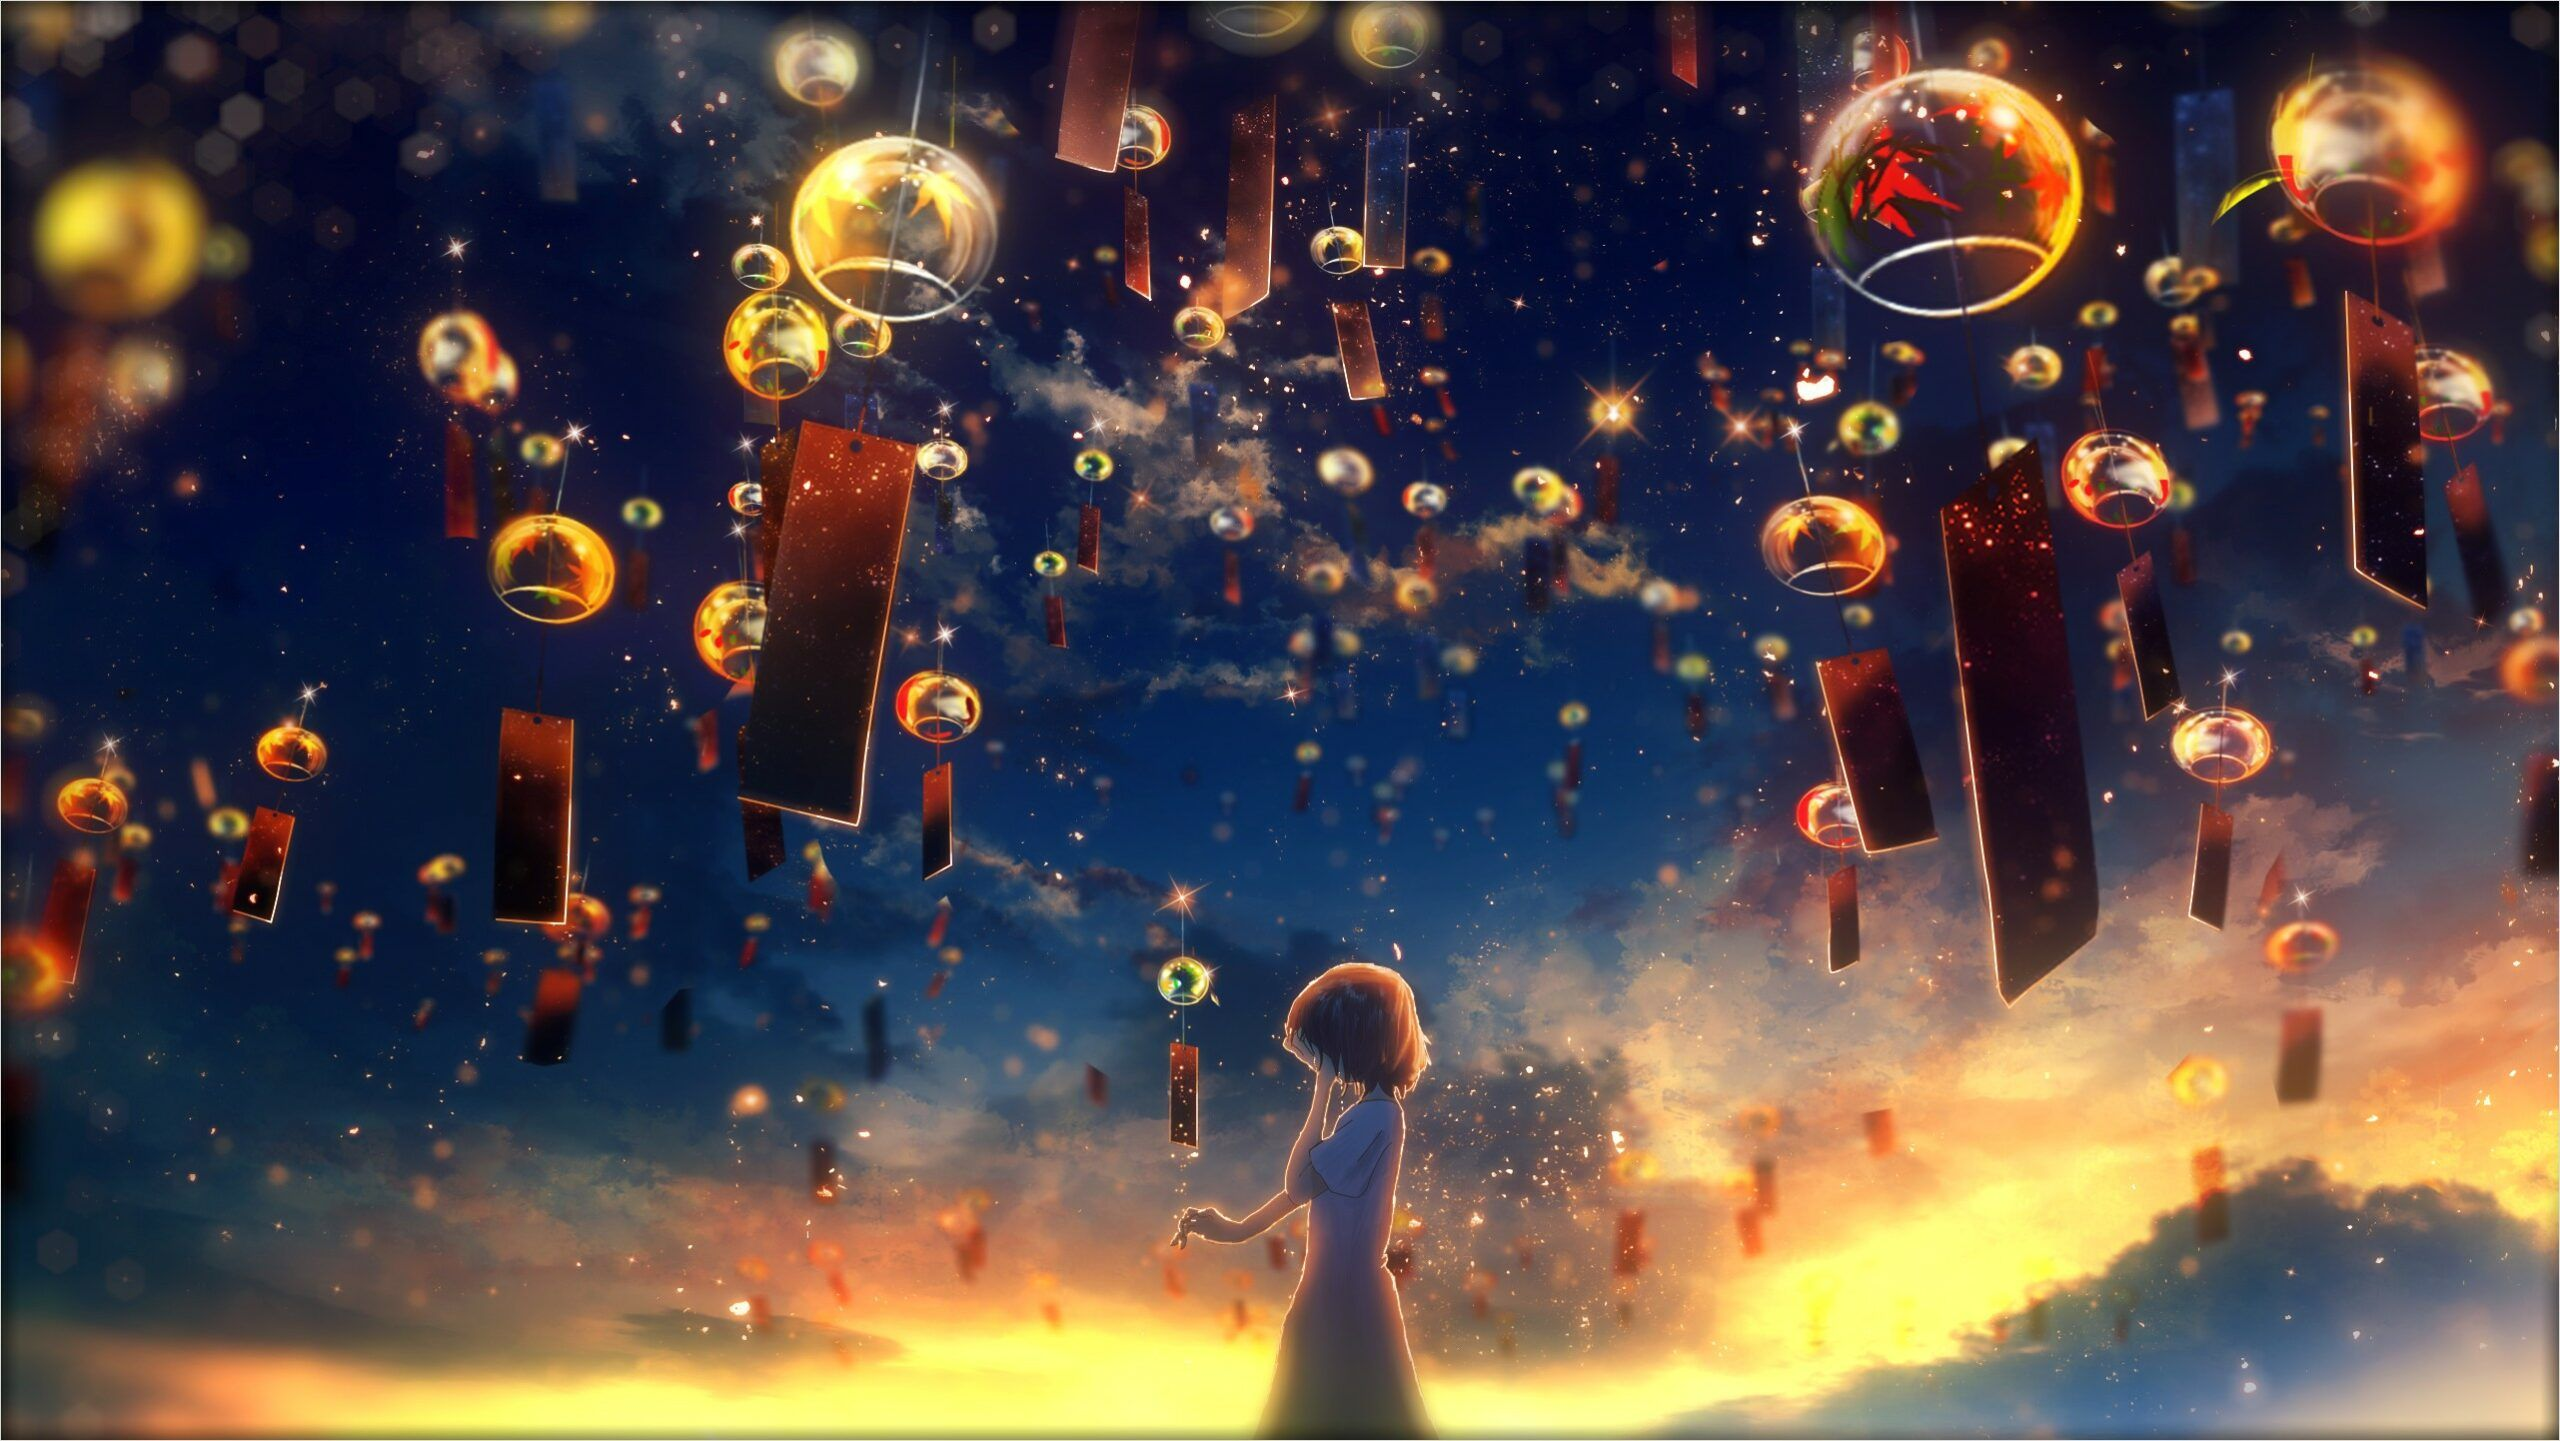 4k Animated Wallpaper Dream in 2020 Hd anime wallpapers Sky 2560x1441